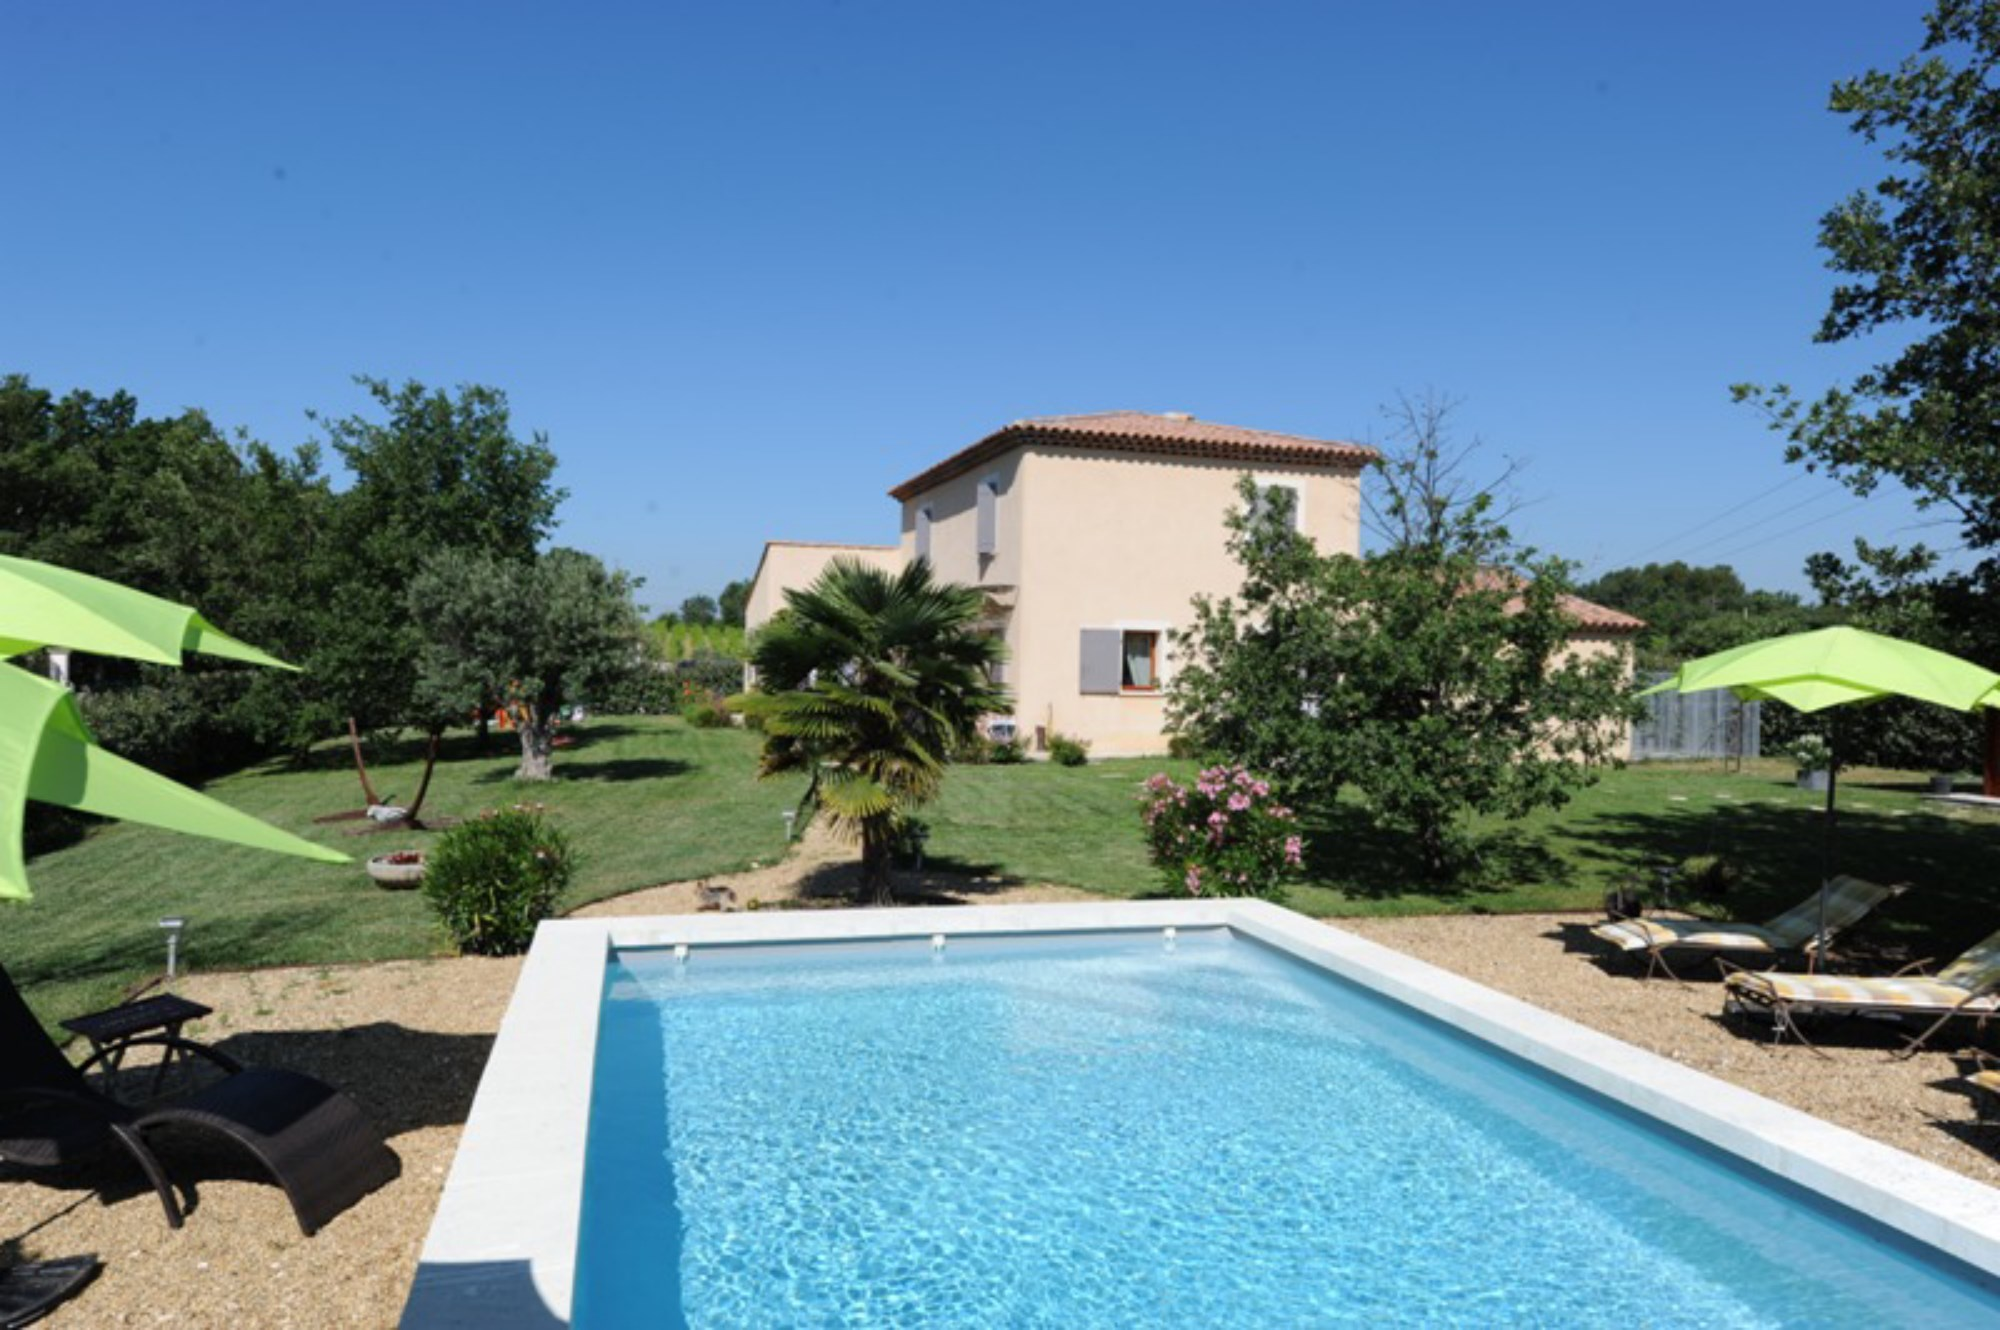 Ventes a vendre pr s d 39 un beau village perch villa for Piscine et jardin heral